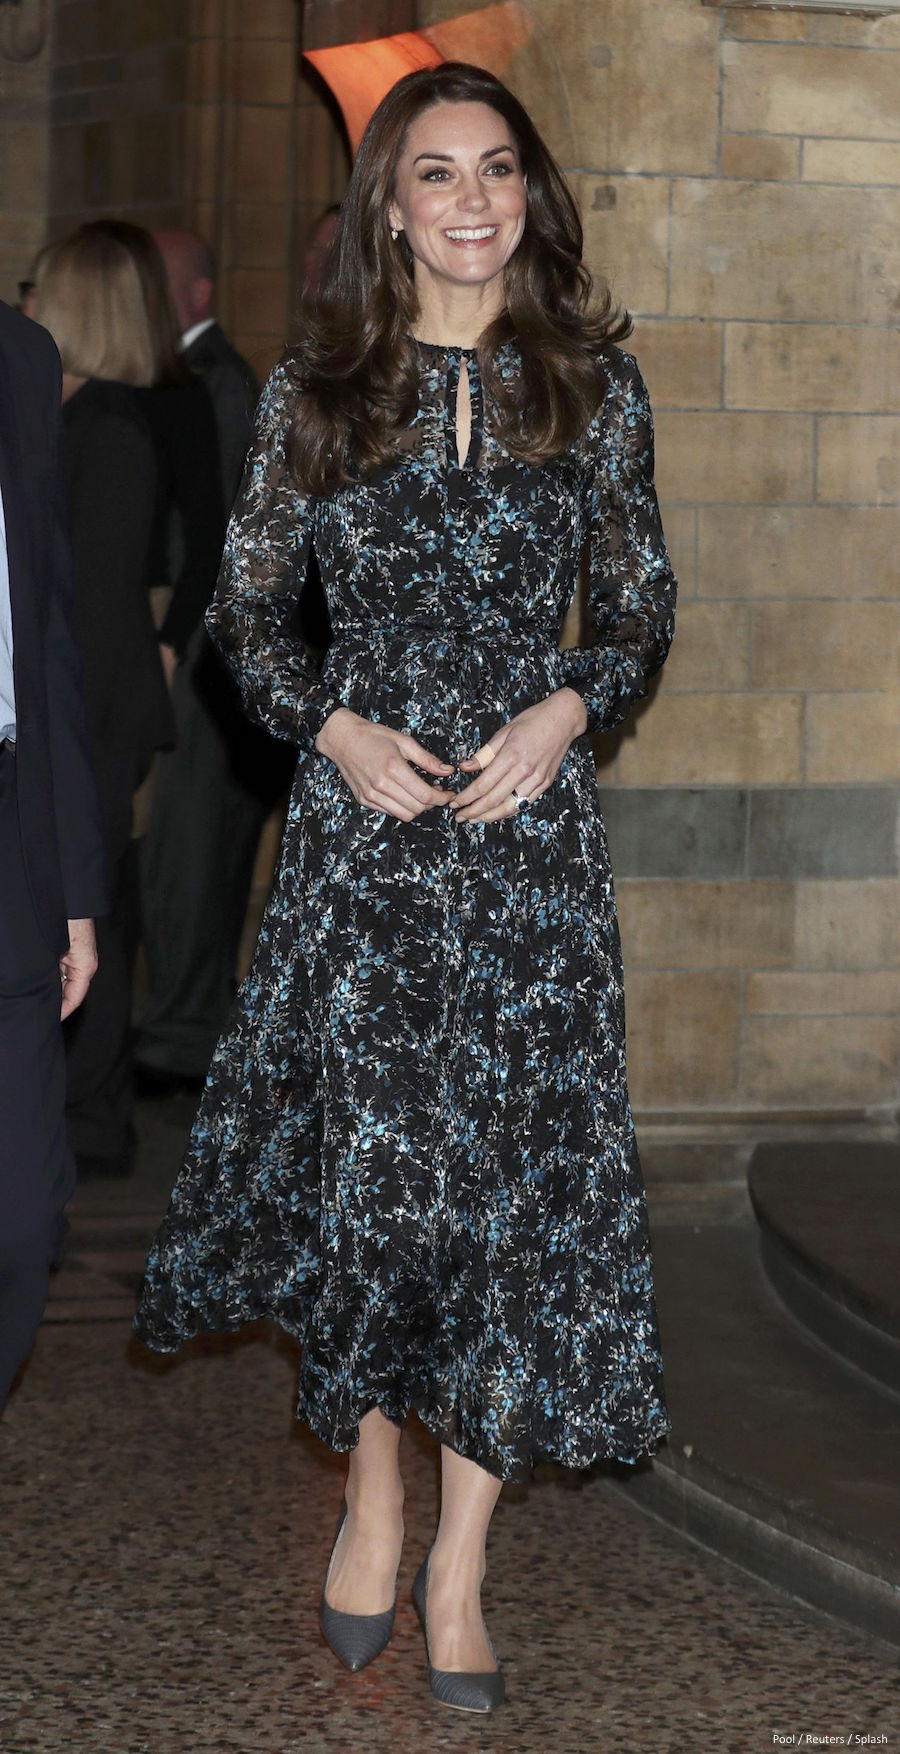 Kate Middleton wearing the L.K. Bennett Cersei dress